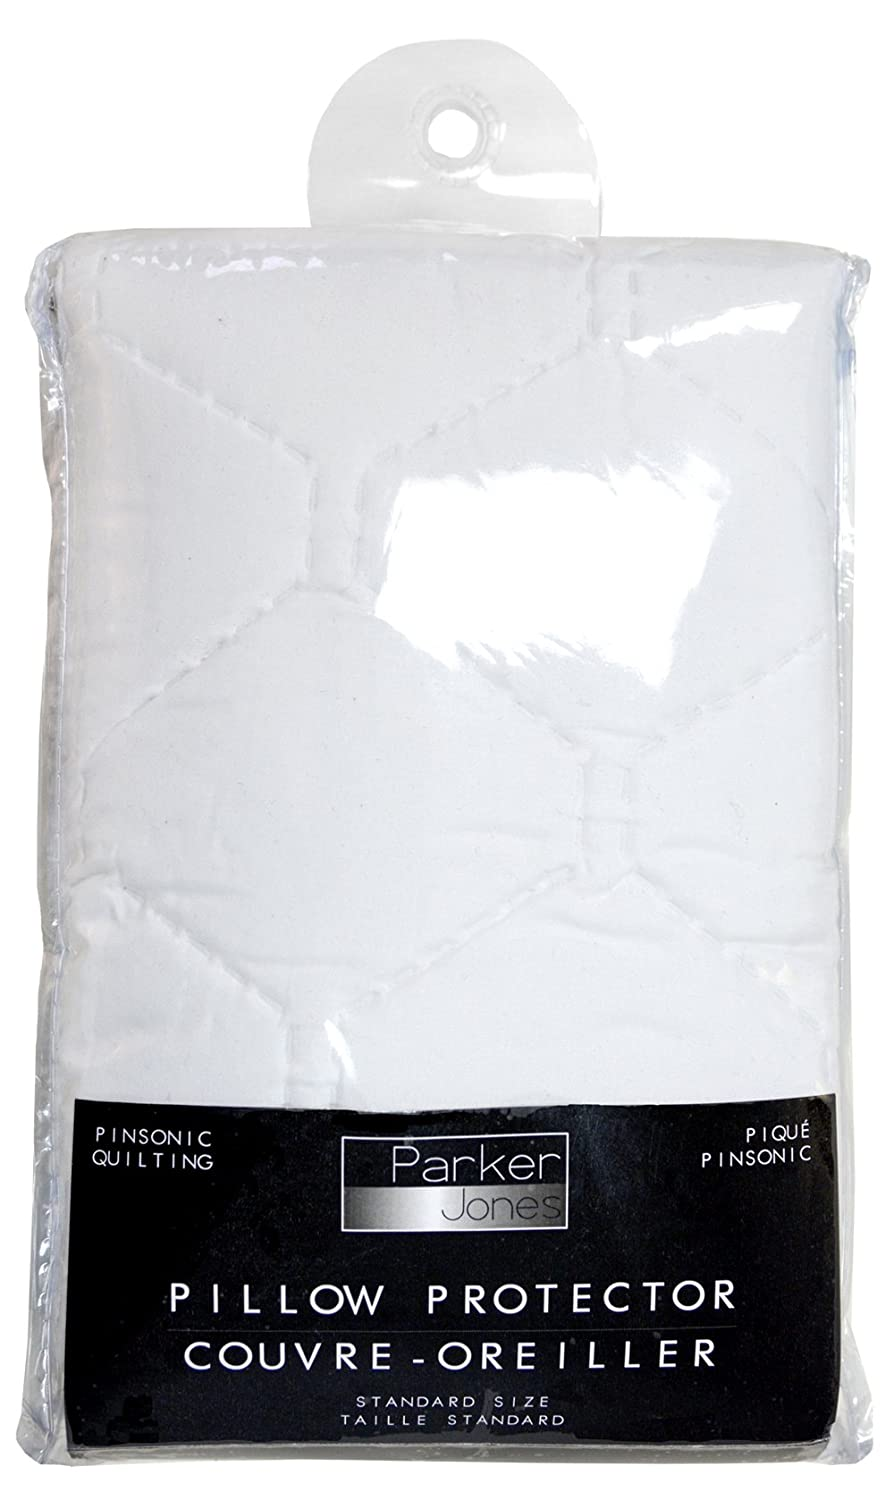 PINSONIC QUILTED PILLOW PROTECTOR LS Home Fashions